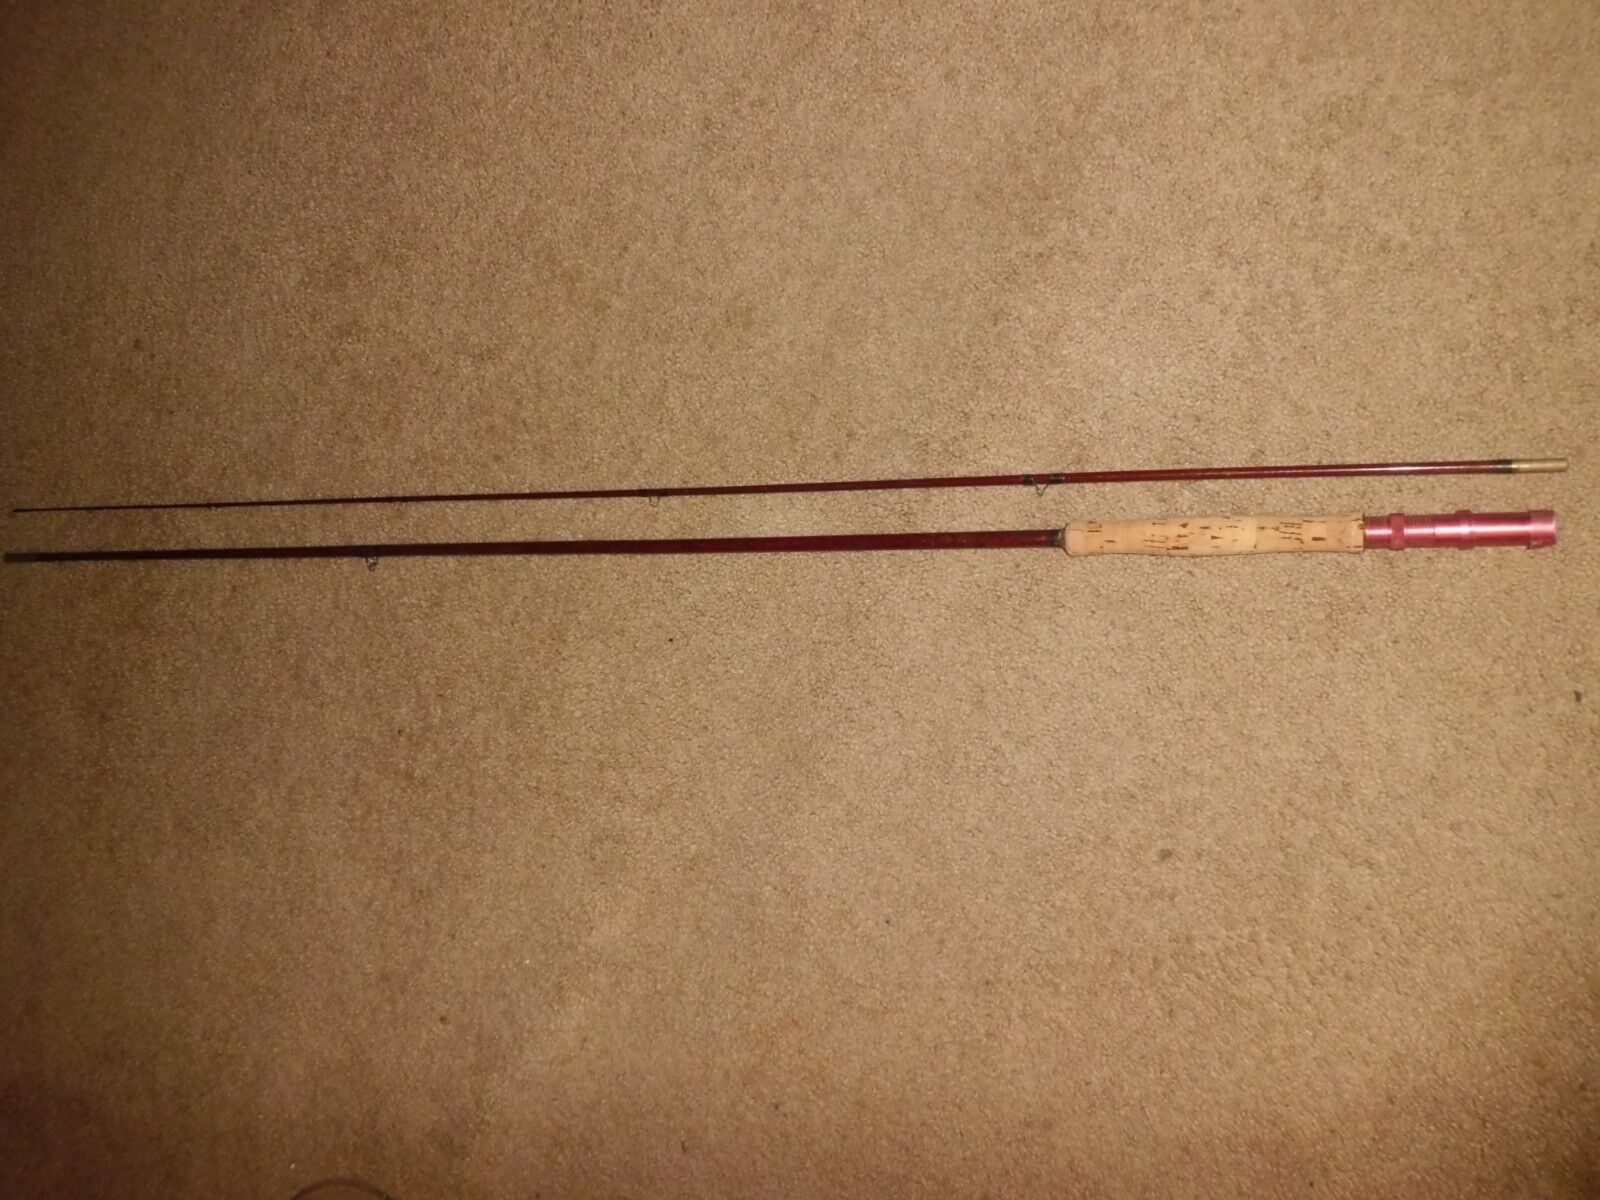 Vintage Phillipson S86 HCH Fiberglass 8'-6  Fly Rod made in USA